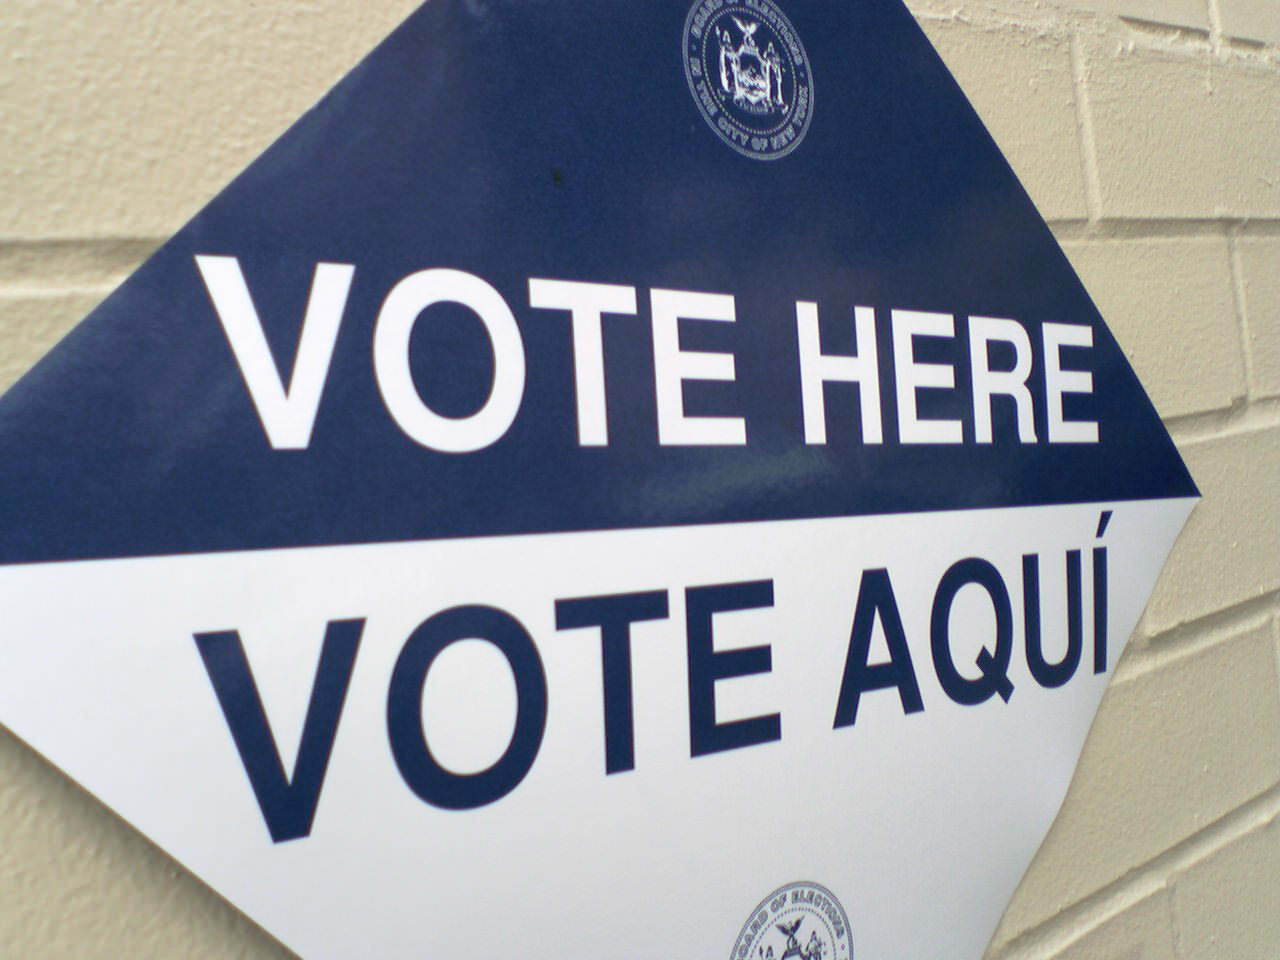 1.Will Swing Voters Make the Difference in the 2014 Midterm Elections?